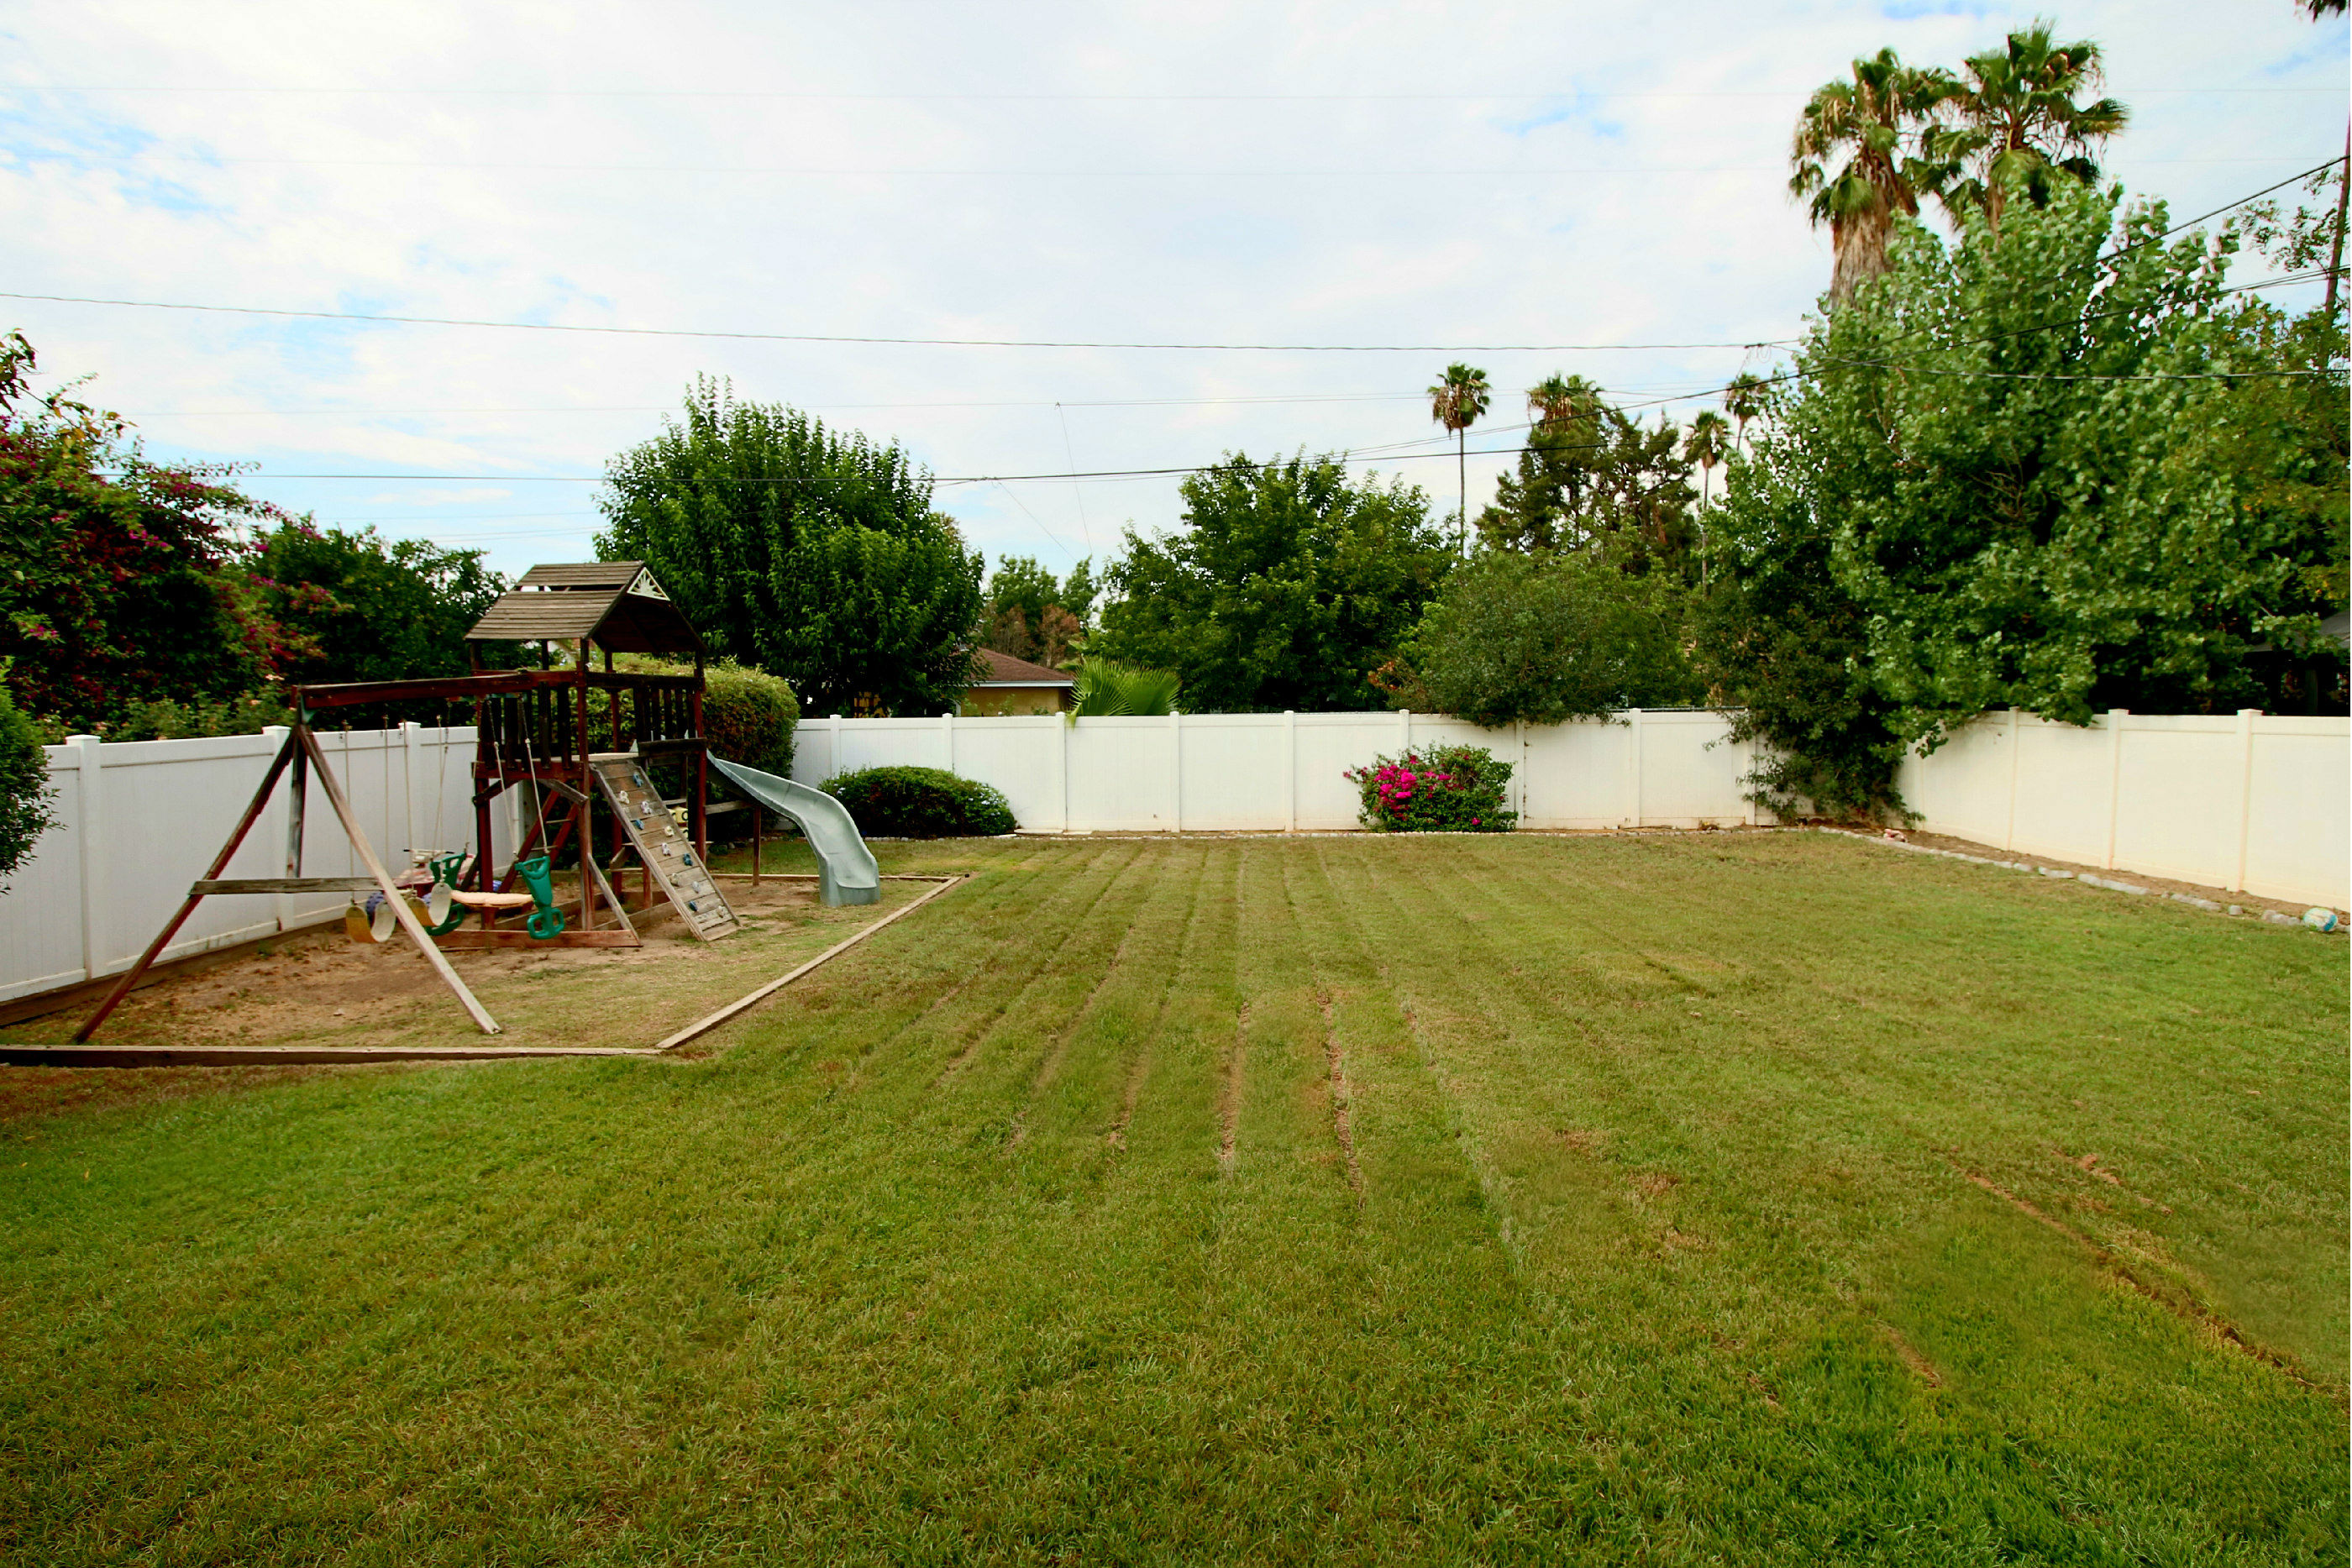 Amazing back yard for children and pets, completely surrounded by Fairway 20-year vinyl fencing (which is only 10 yrs old). Swingset will stay if buyers want it. Automatic sprinklers....AND best unobstructed view of Mt. Rubidoux fireworks -- invite all your friends over for the 4th of July!